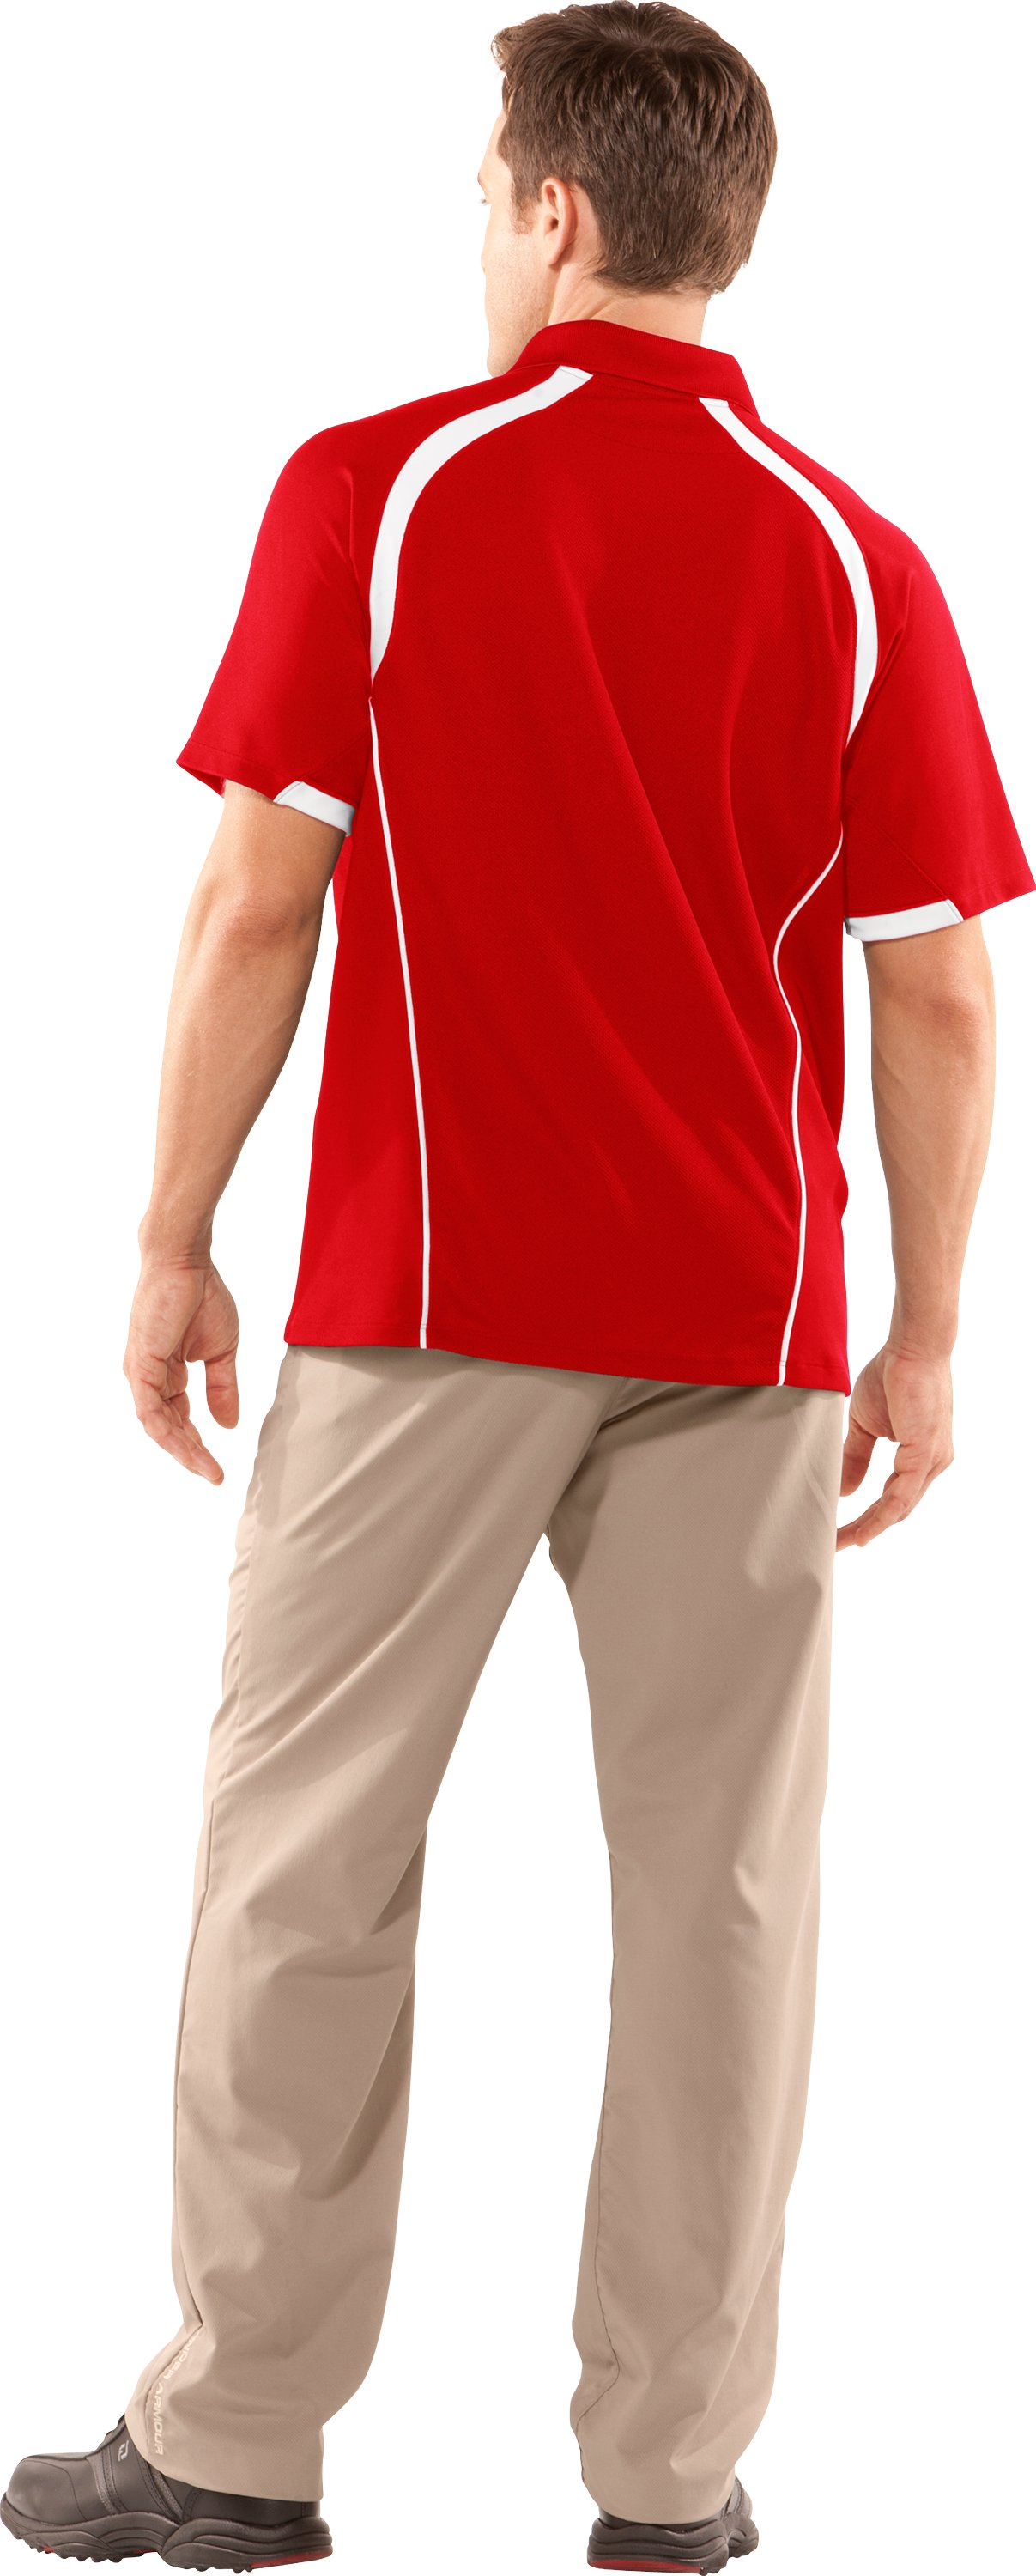 Men's Advantage Short Sleeve Golf Polo, Red, Back